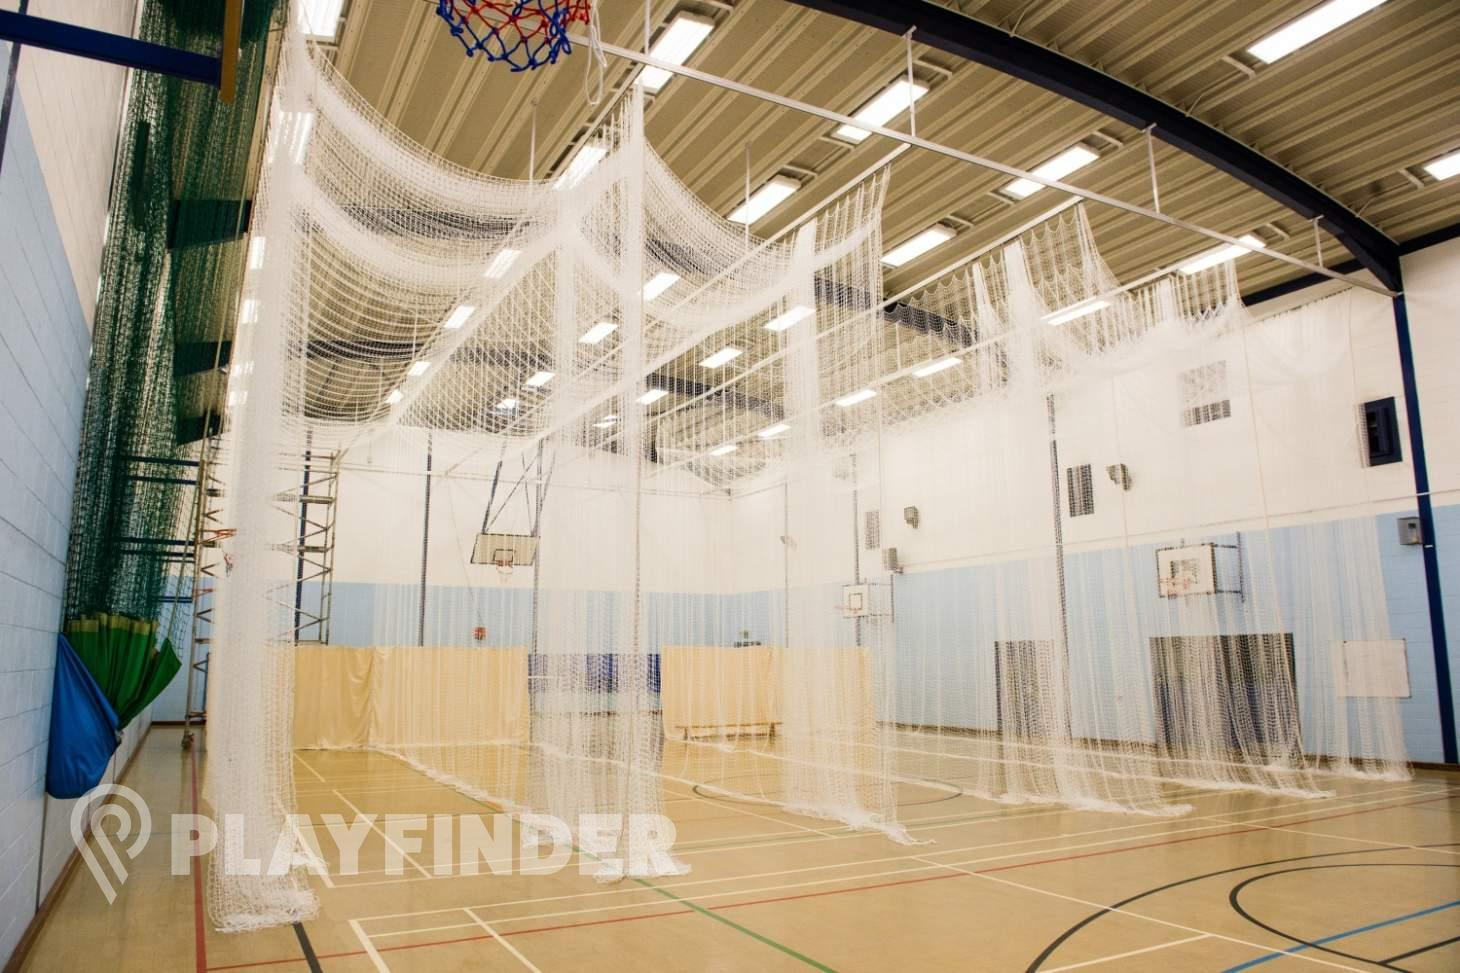 Featherstone Sports Centre Indoor netball court